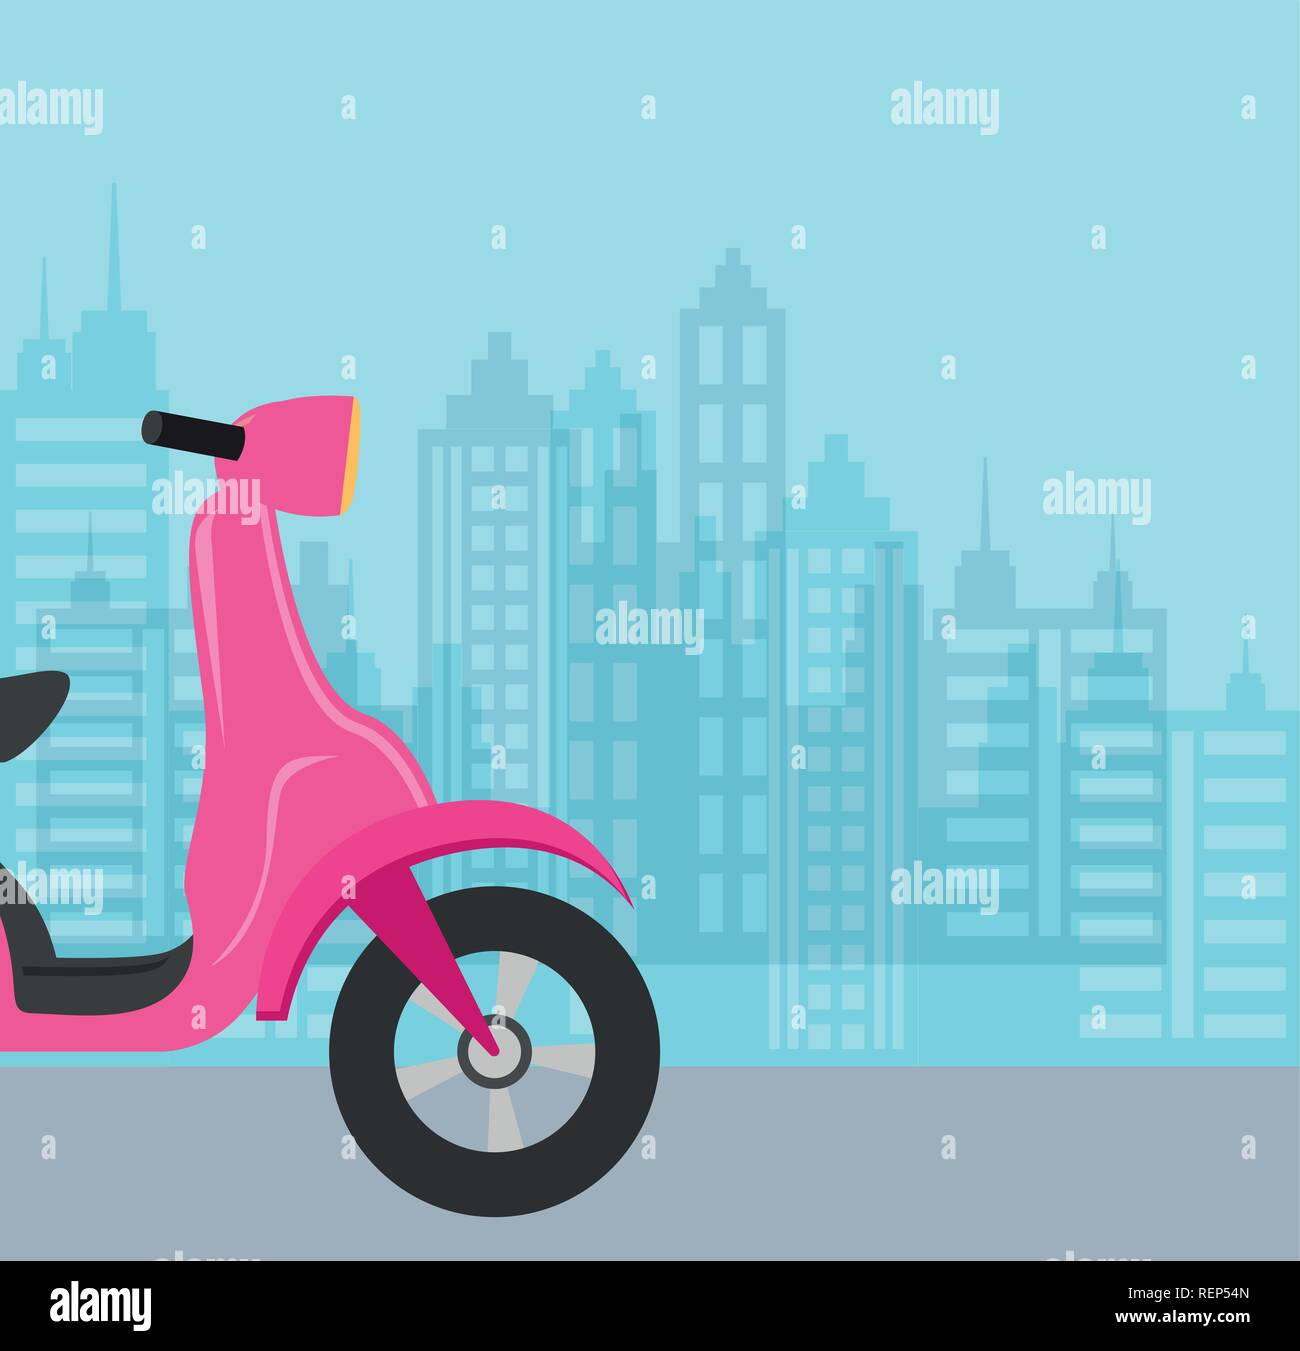 Motorcycle over blue background, colorful design. vector illustration - Stock Vector